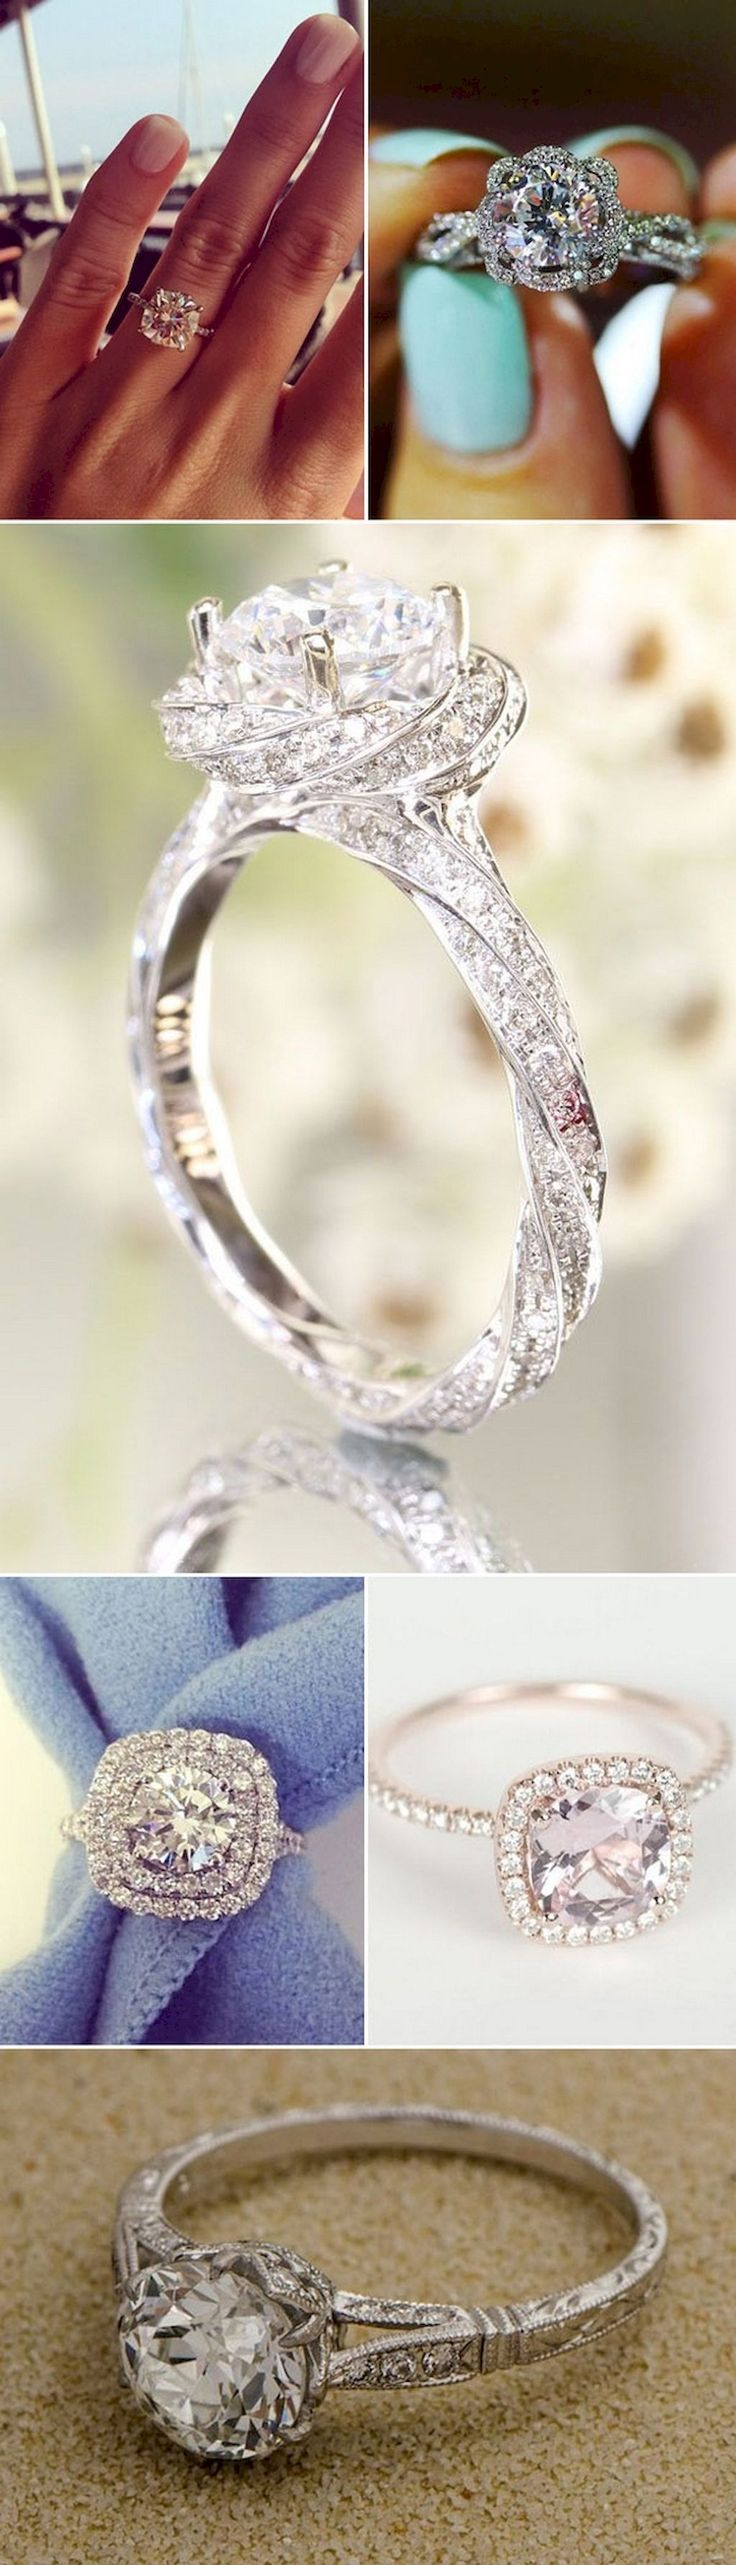 Cool 57 Unique Engagement Rings So Beautiful They'll Make You Cry https://bitecloth.com/2017/07/12/57-unique-engagement-rings-beautiful-theyll-make-cry/